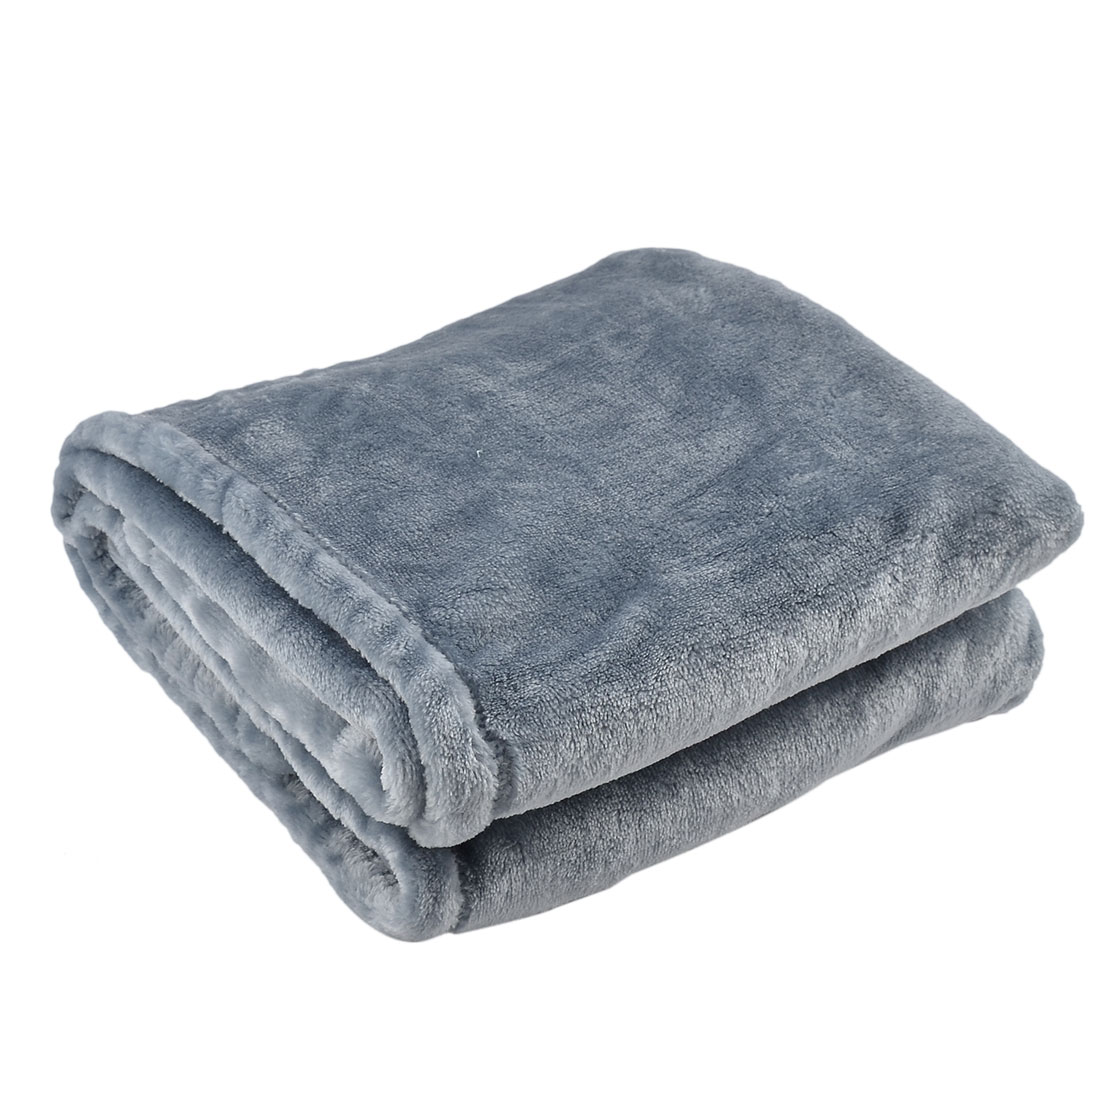 Home Bedroom Warm Soft Throw Pure Blanket Rug Flannel Bed Quilt Slateblue